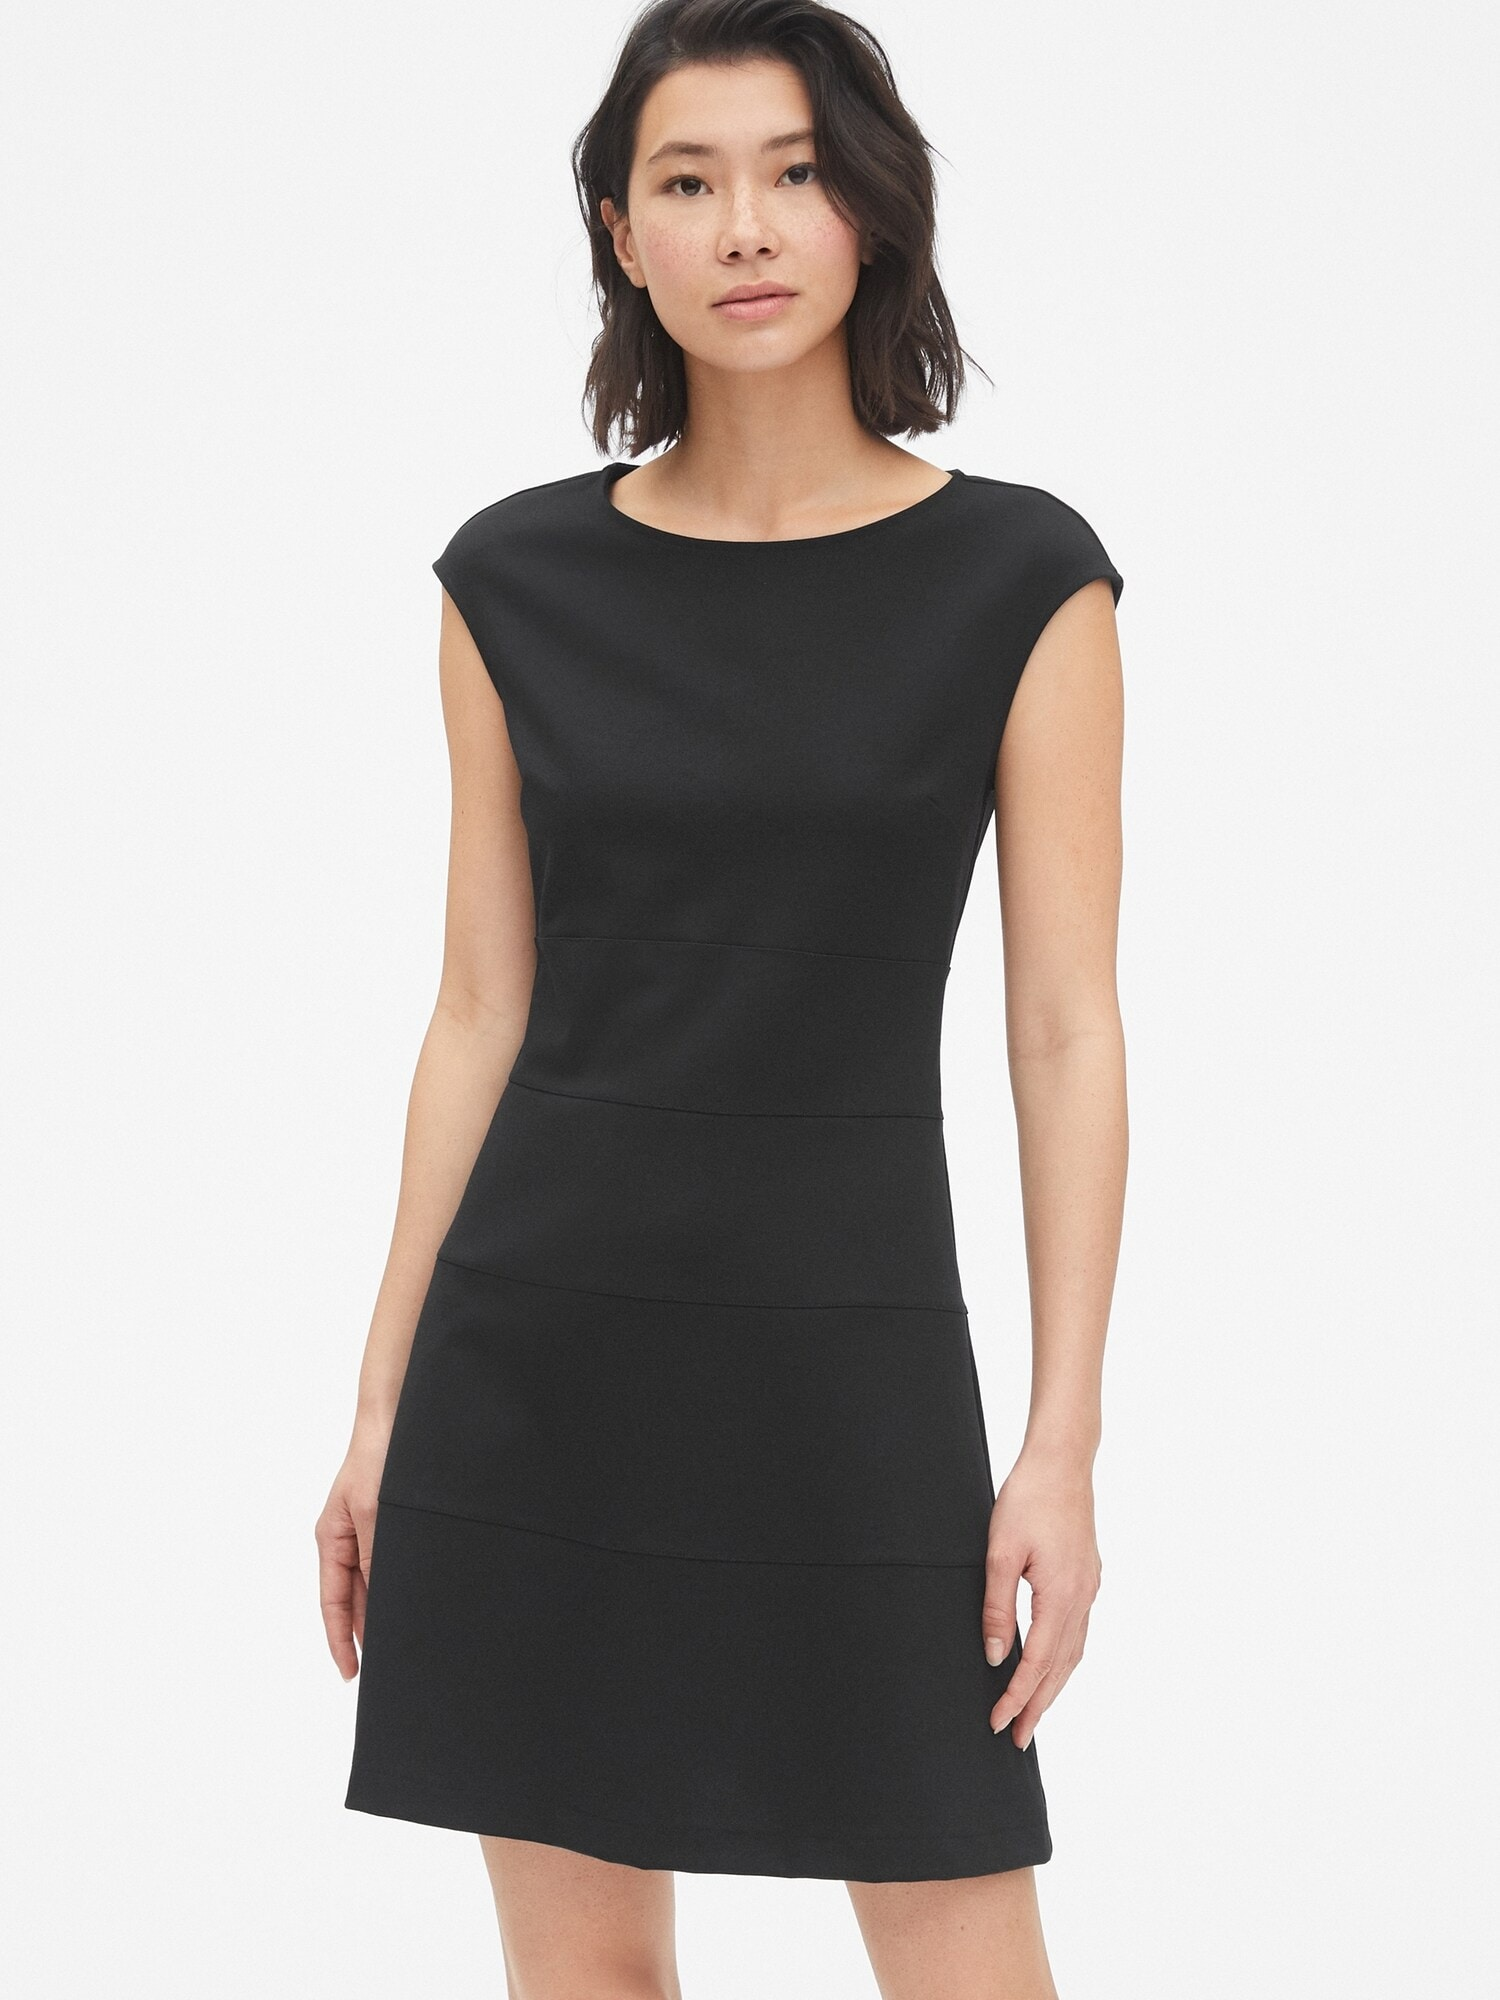 Cap Sleeve Fit and Flare Dress in Ponte